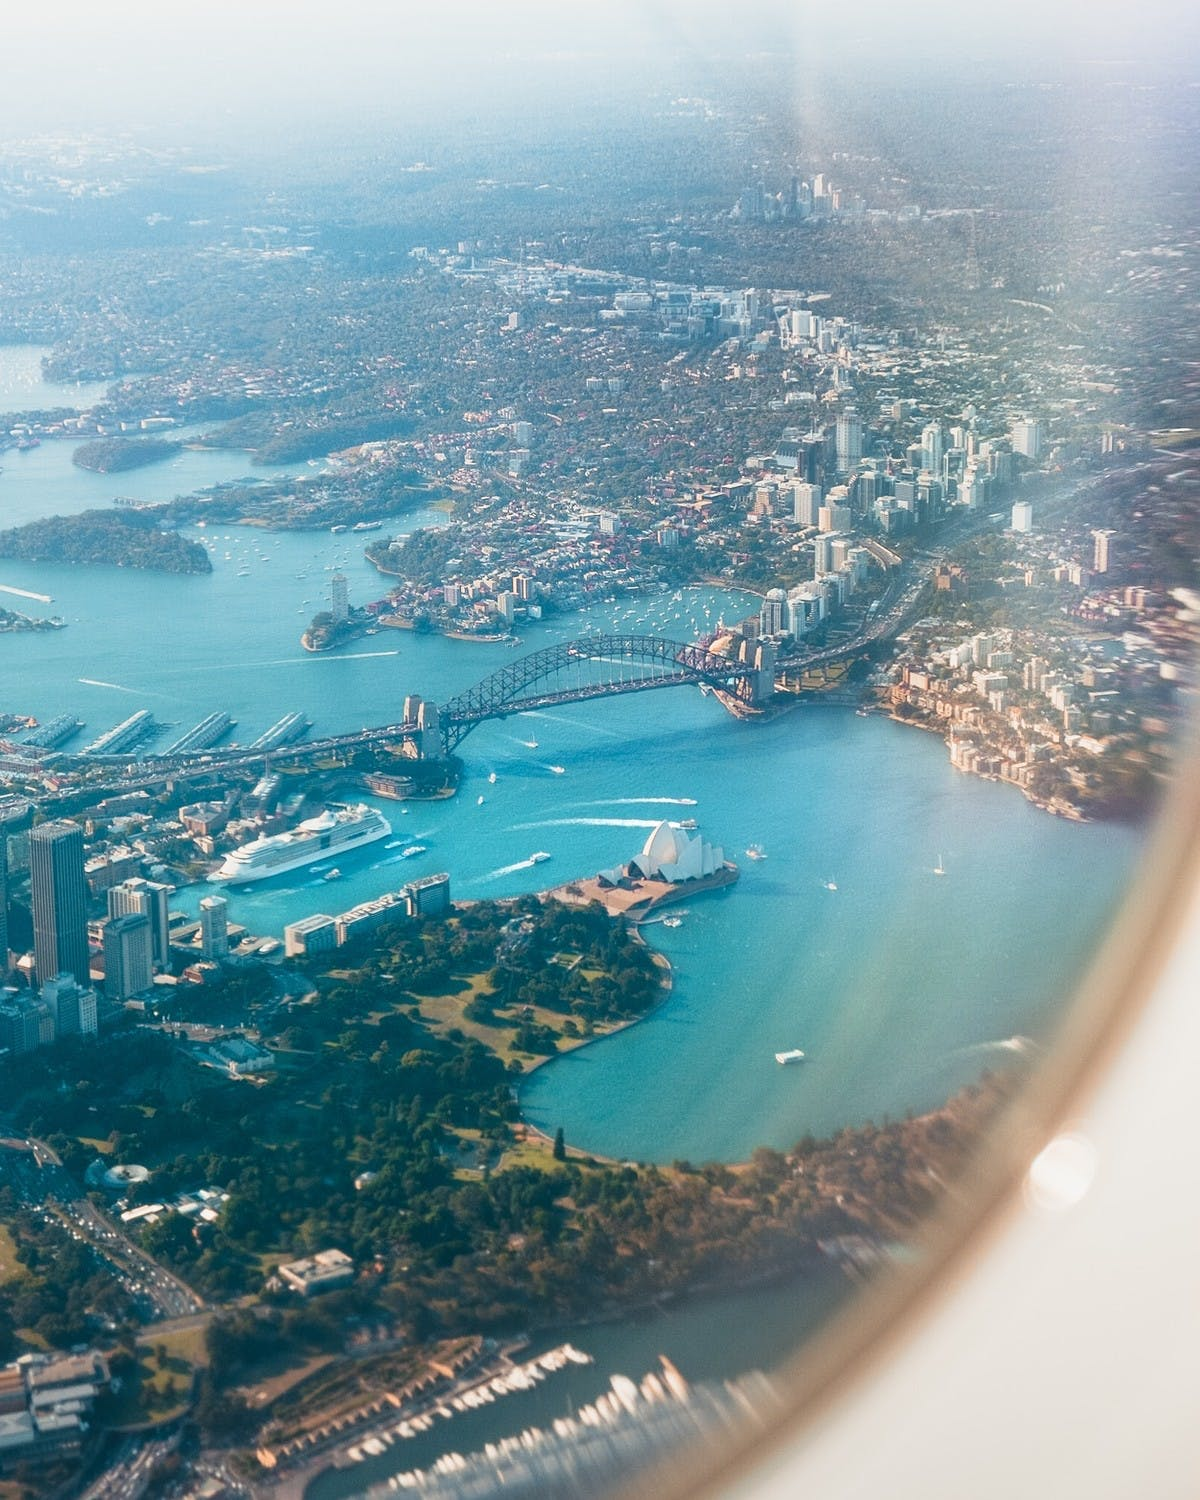 Plane view of Sydney - Photo byLeio McLaren (@leiomclaren) on Unsplash